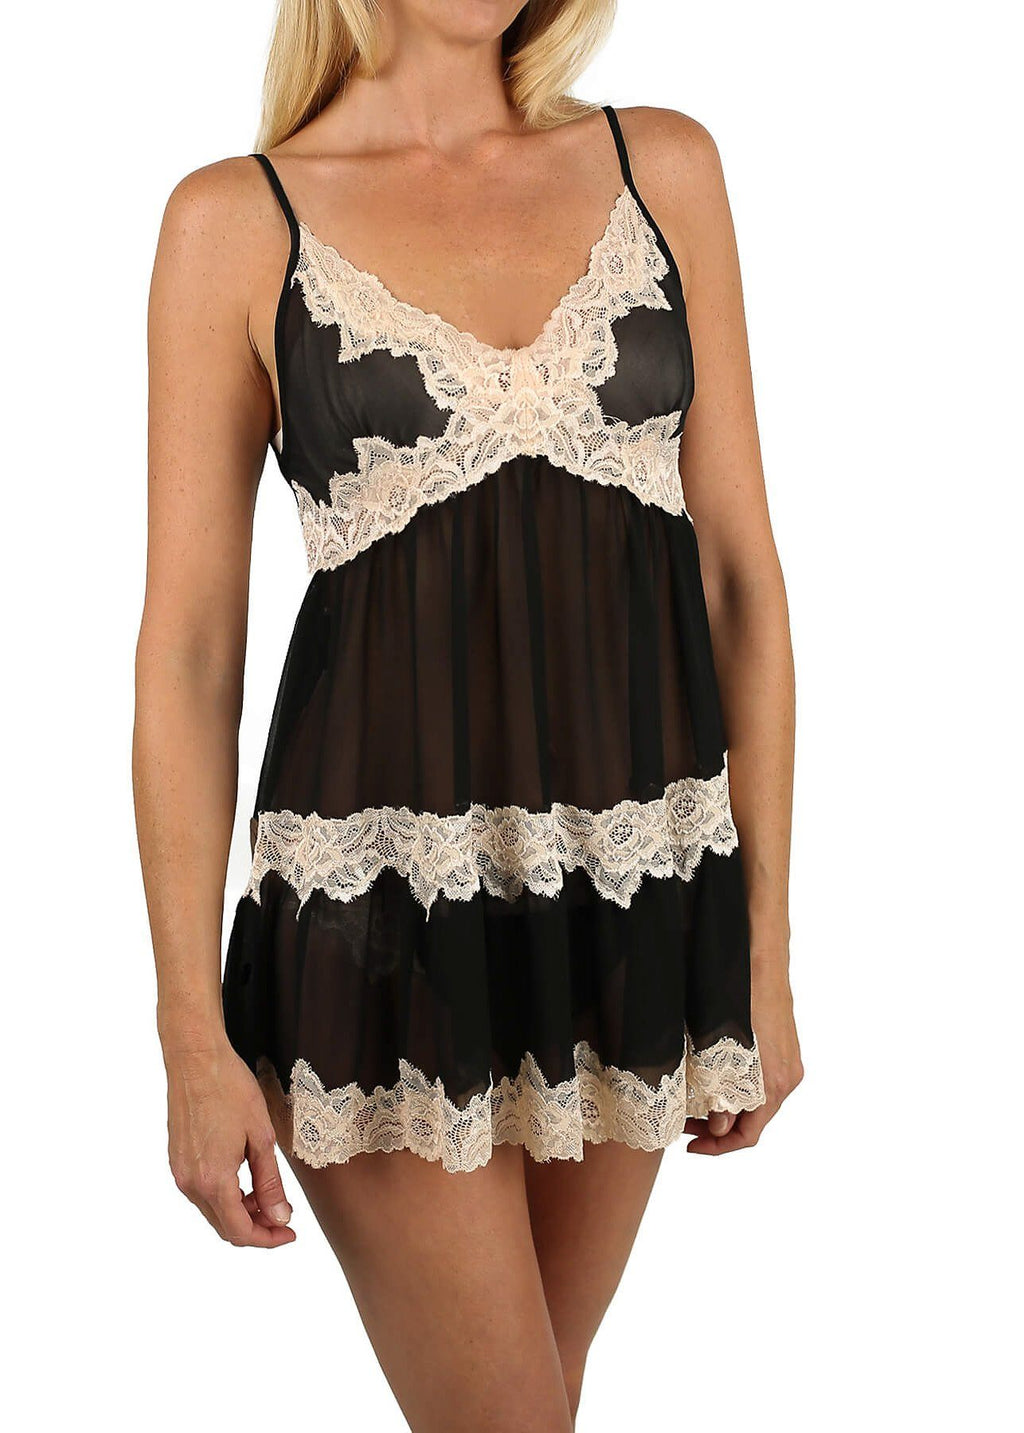 Sophie Chemise with Thong - Black Mystique Intimates